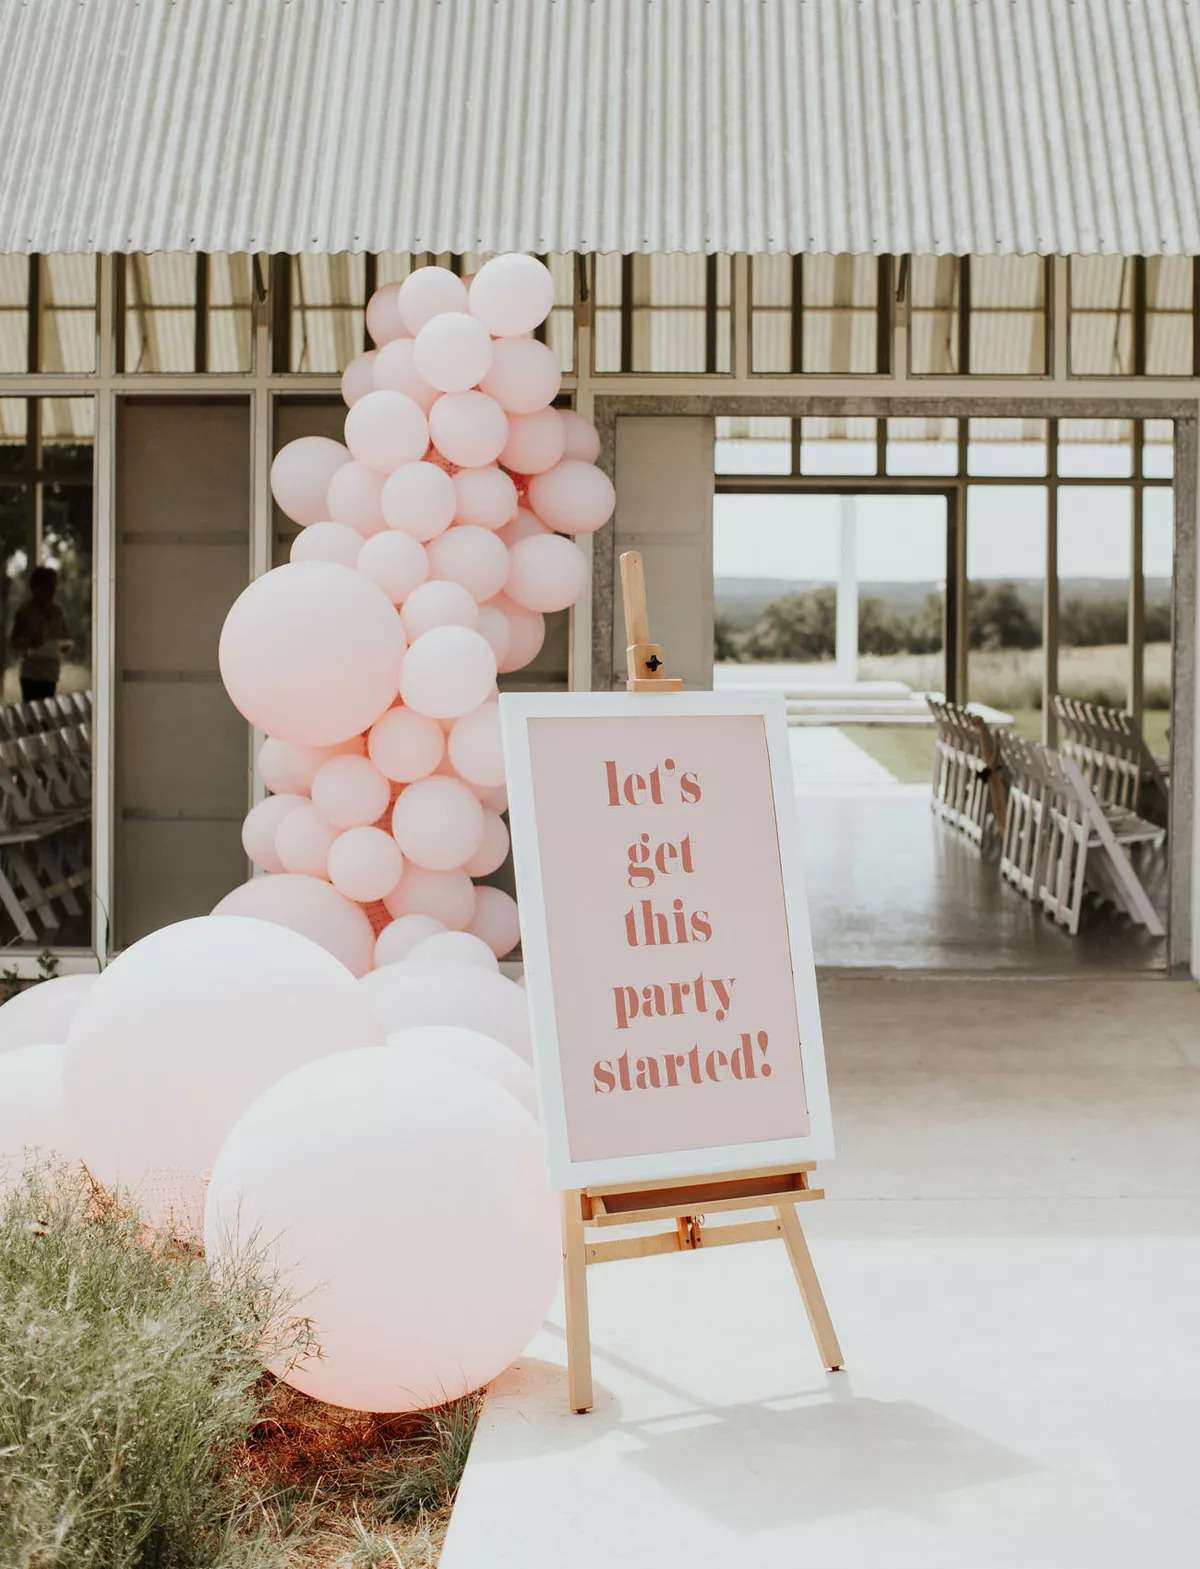 Millennial pink balloons decorating the entrance